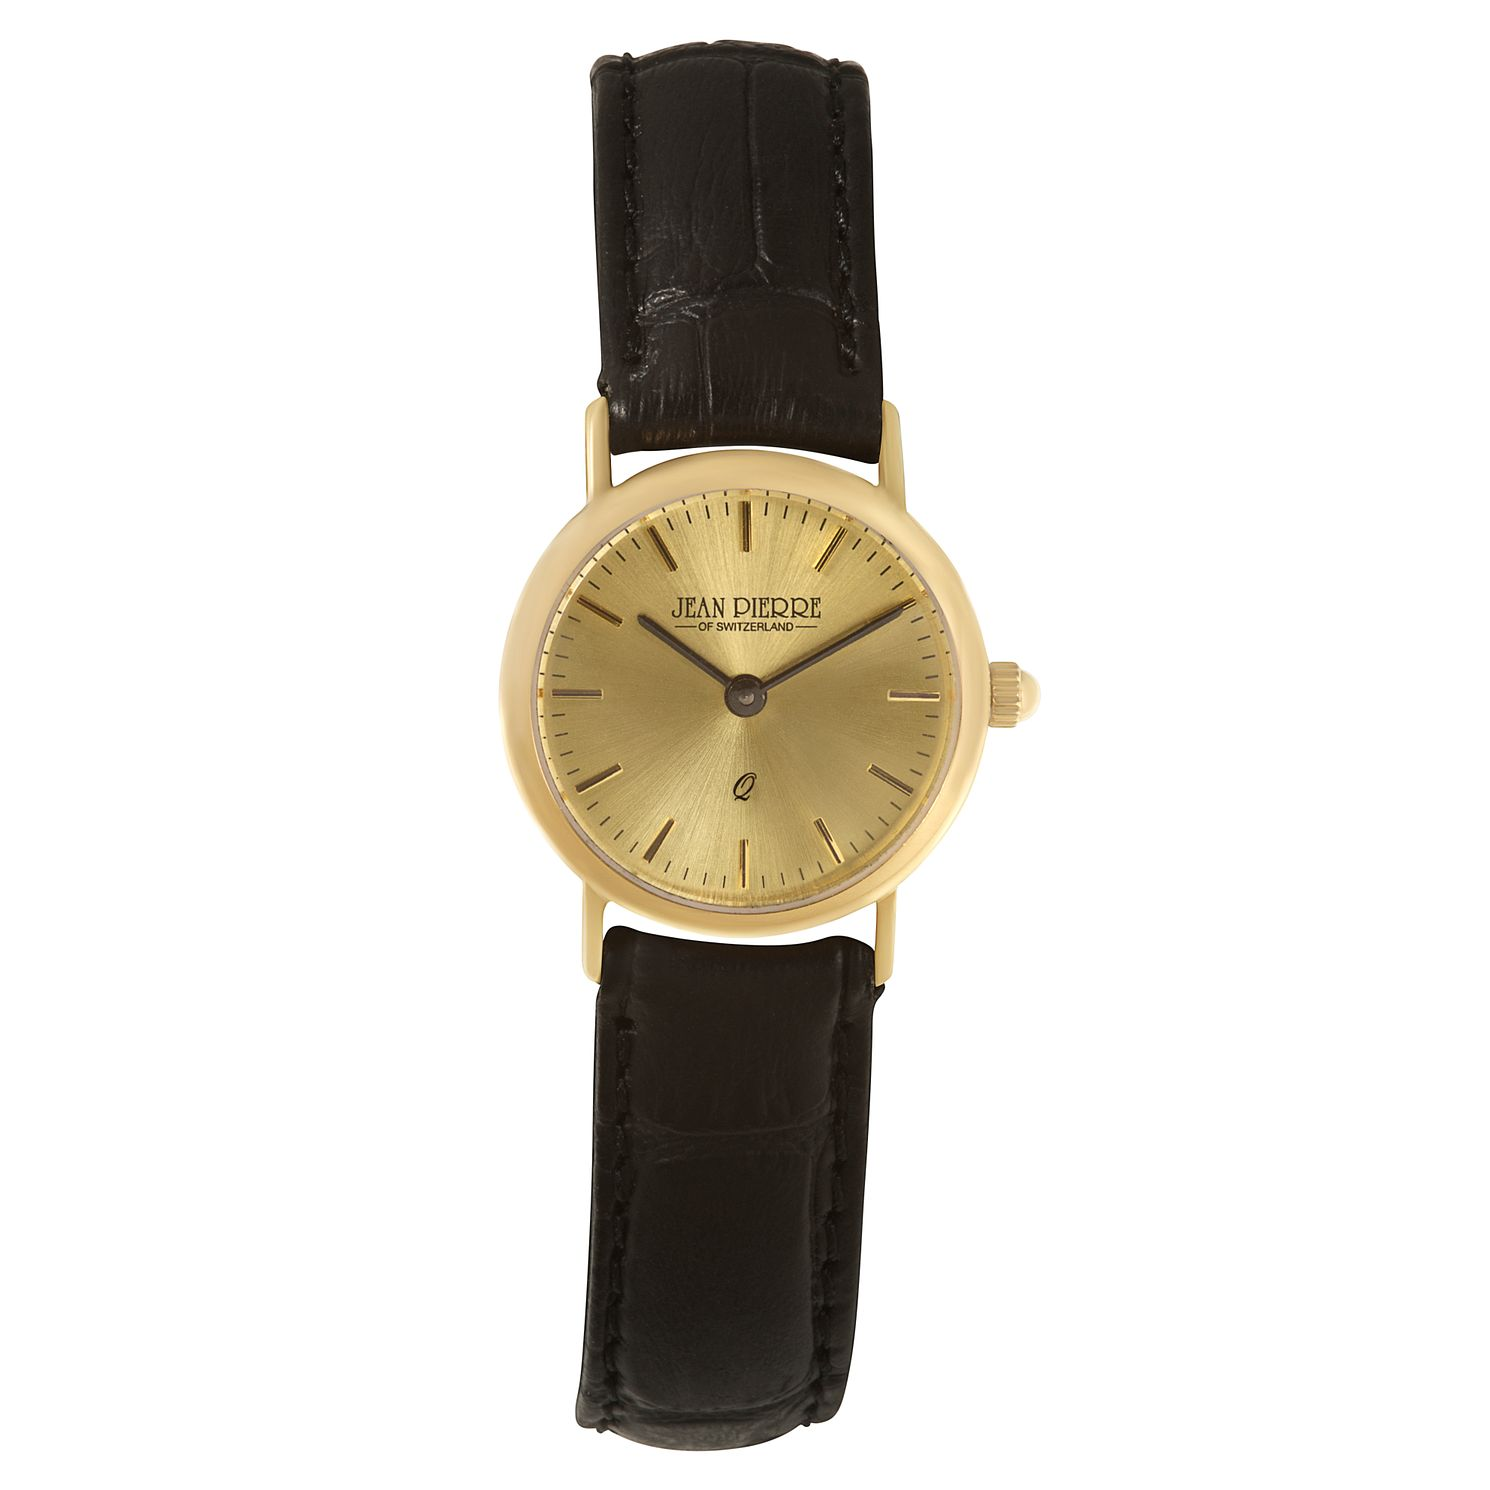 Jean Pierre Classique Ladies' 9ct Gold Black Strap Watch - Product number 2178621